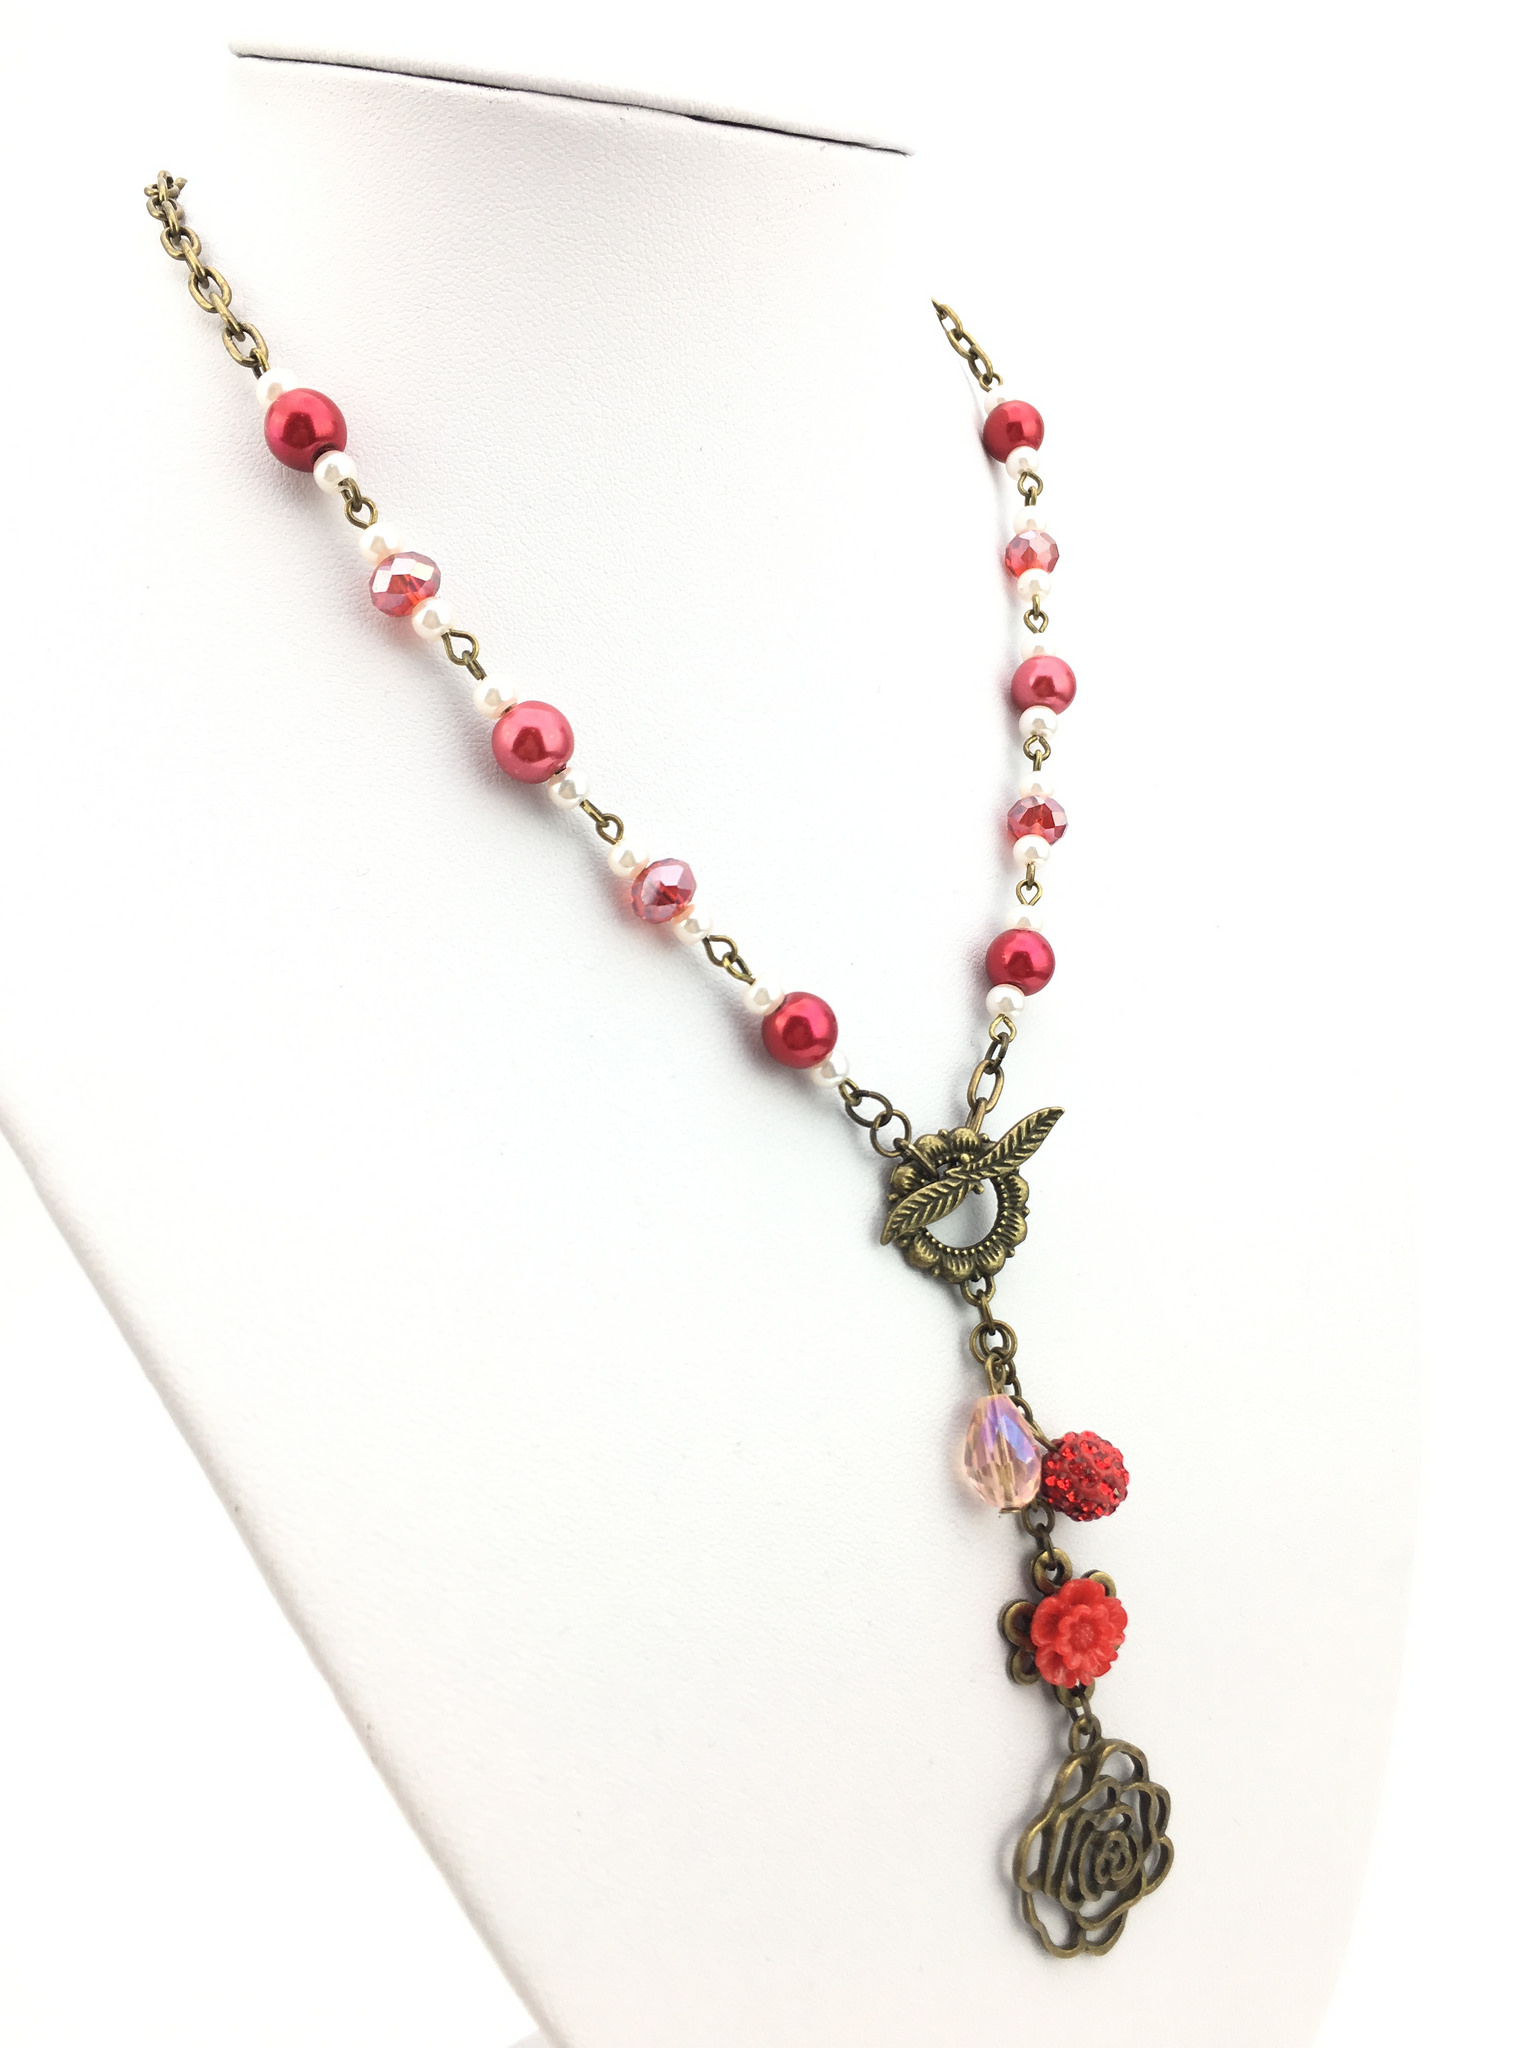 Stunning Handmade Vintage Style Necklace with Red Flower Pendant and Dangling Rhinestone bead and Crystal